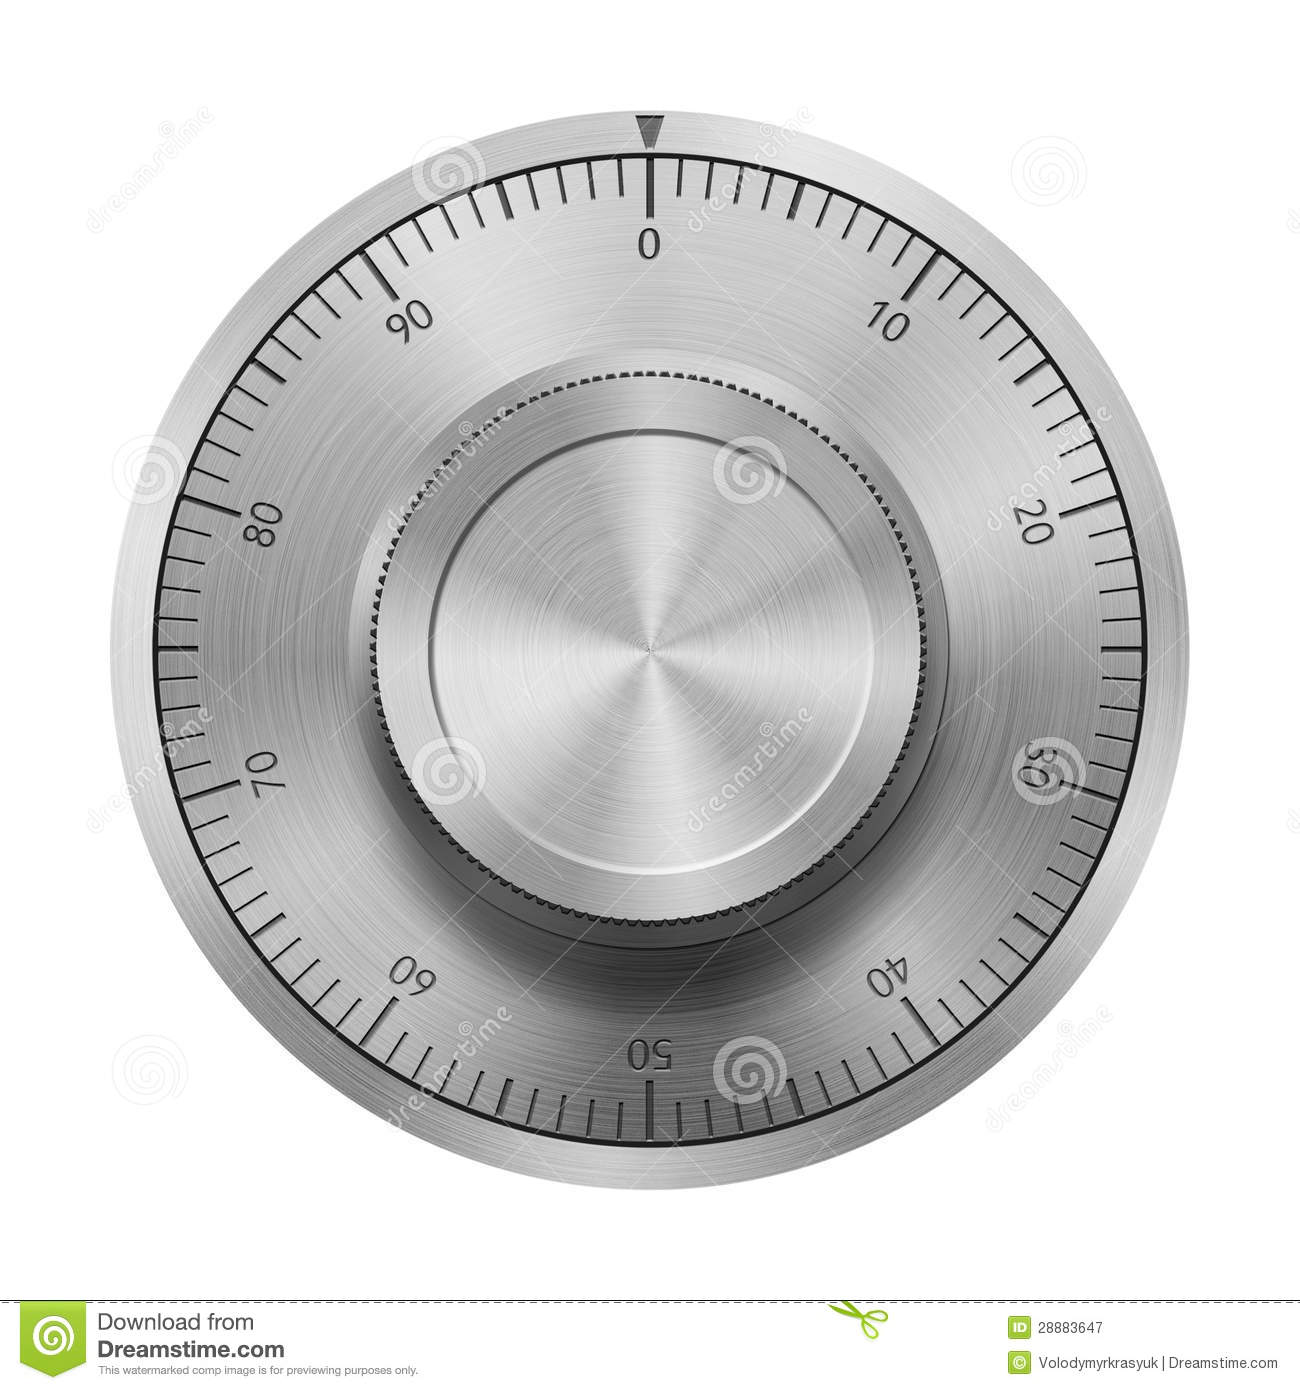 Realistic Safe Combination Lock Wheel Stock Photo.